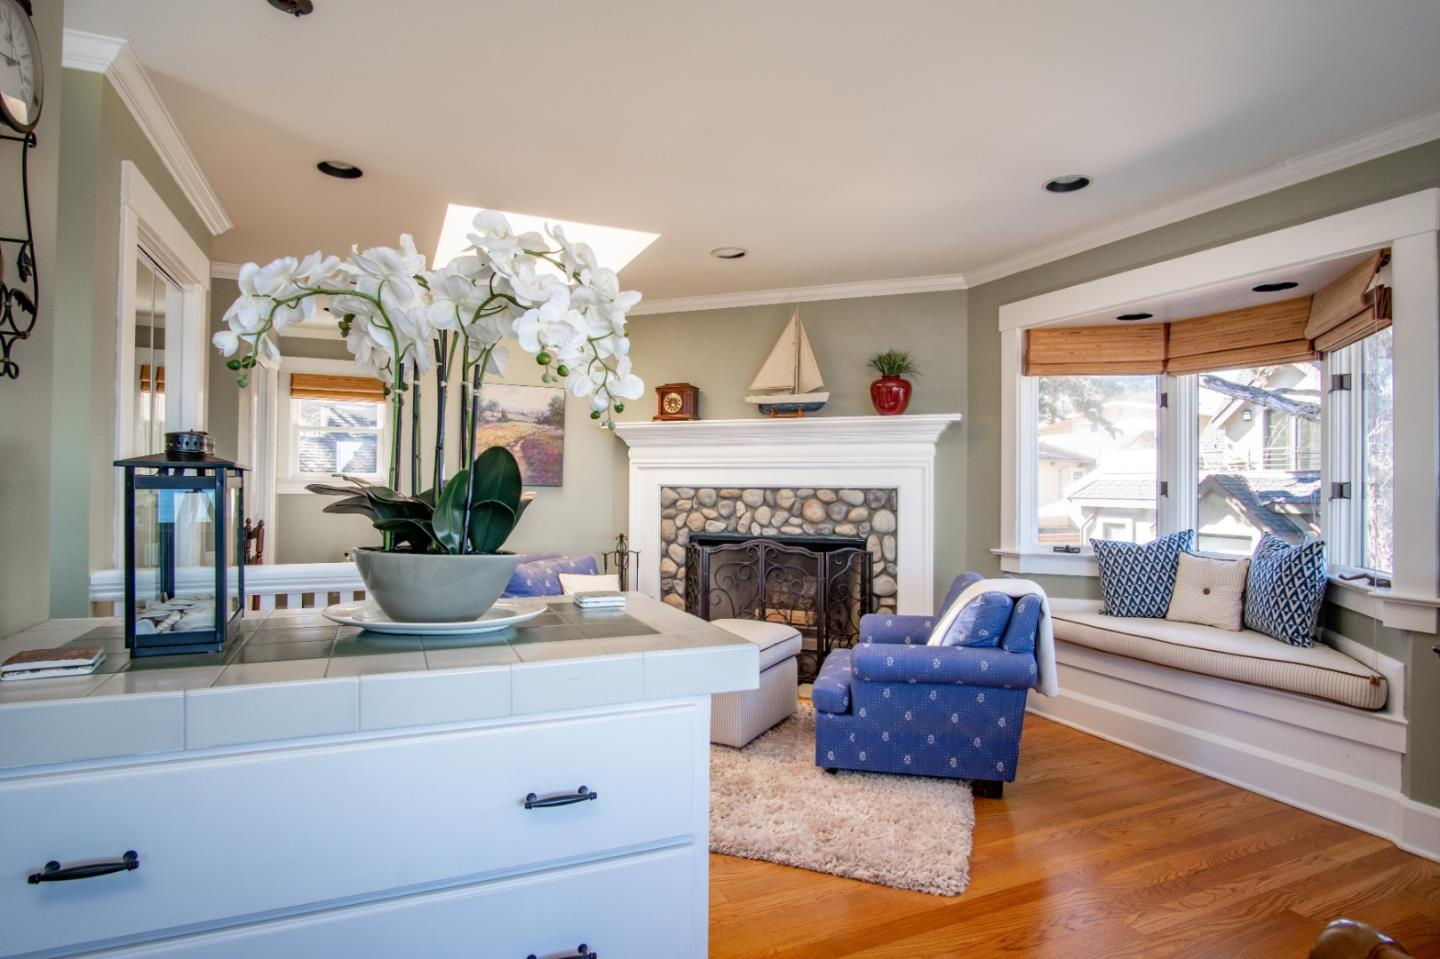 214 3rd ST Pacific Grove, CA 93950